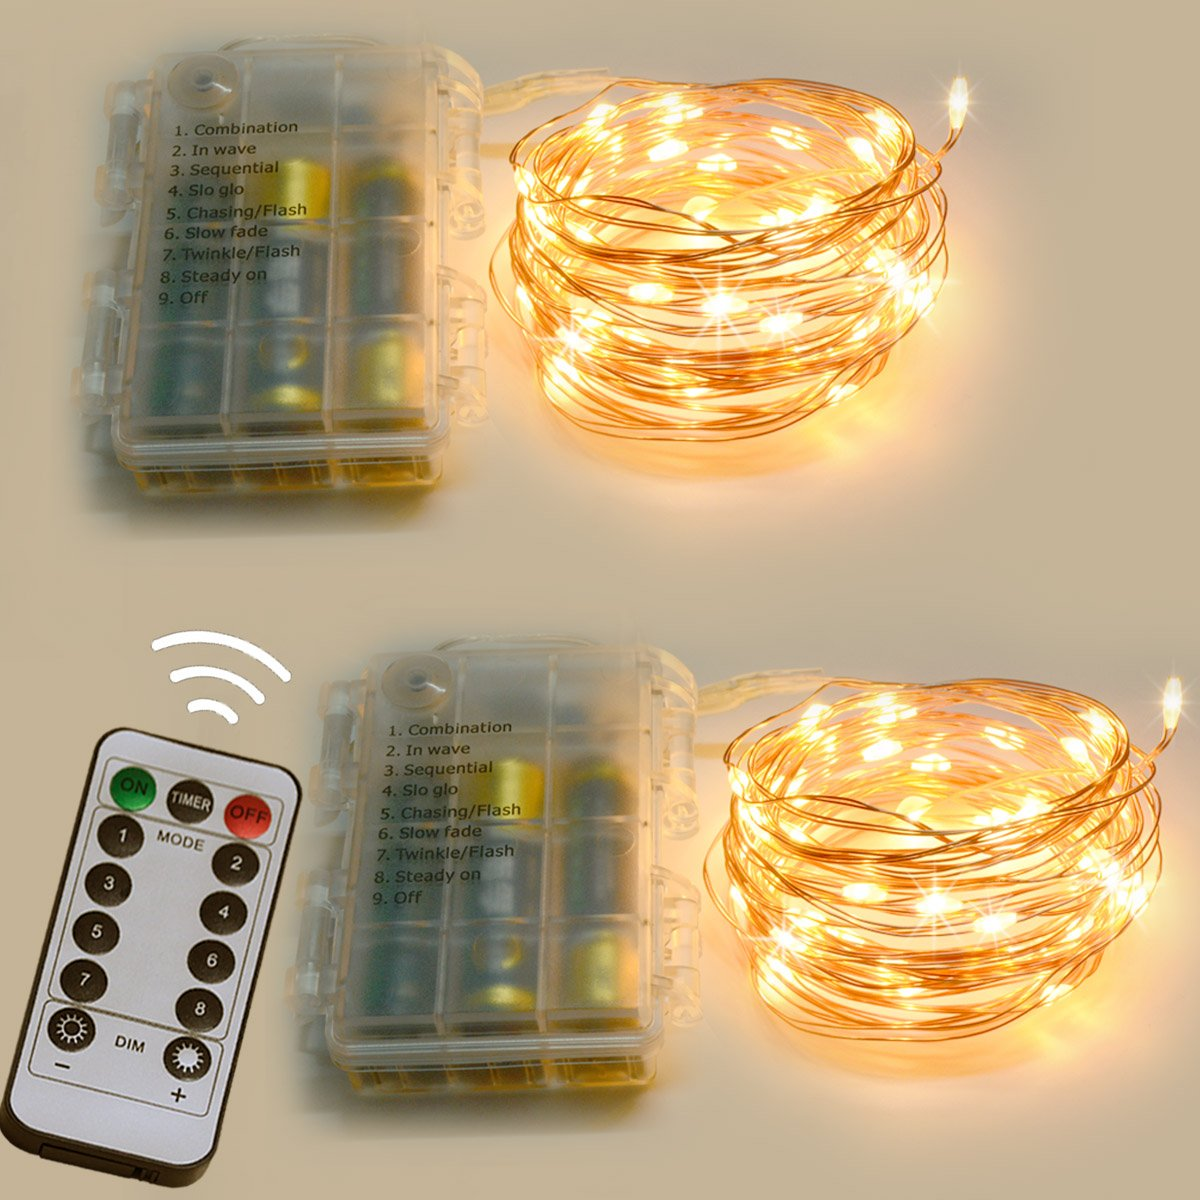 Homeleo 2Pack Battery Operated LED Copper String Lights, 16.4ft 50 LED 8 Modes Dimmable Fairy Lights with Remote Control(Warm White)